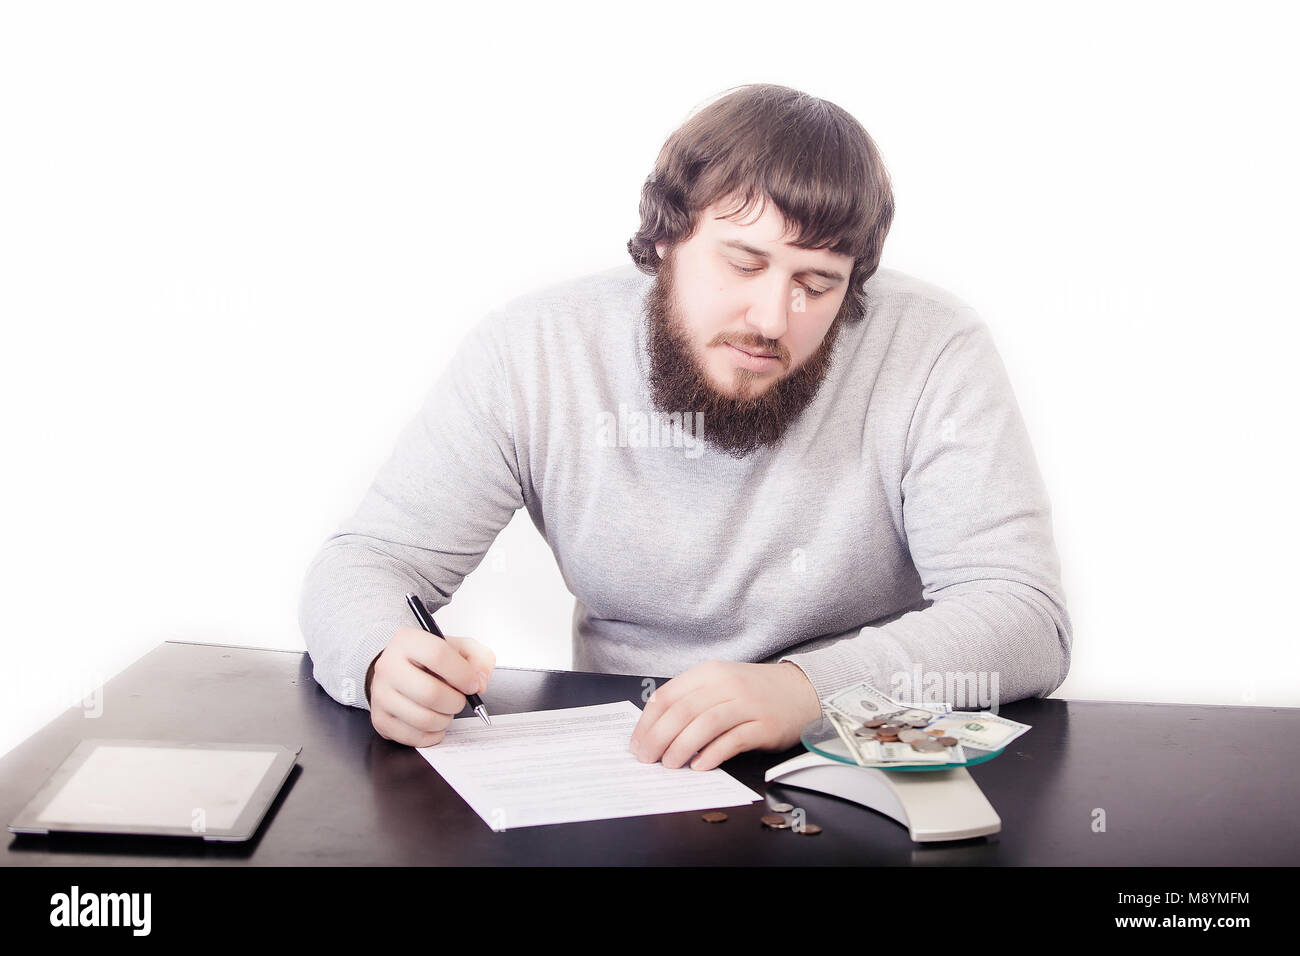 A handsome young programmer, working, dreaming, at the table, looking at the money, coming up with the creation - Stock Image